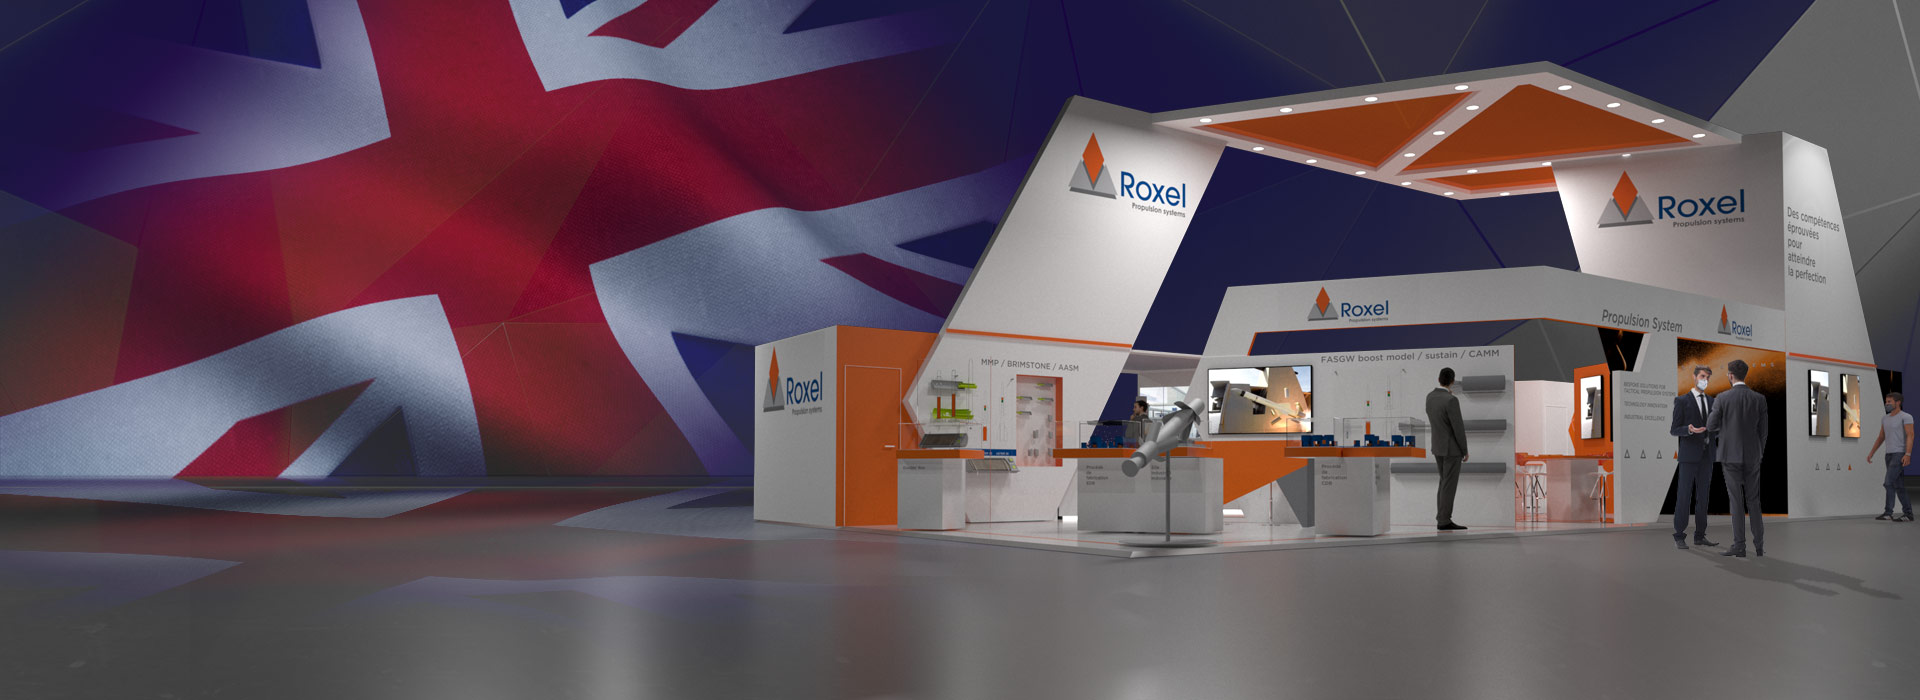 """Roxel @ <span style=""""color: #F6672C;"""">DSEI in London</span>"""